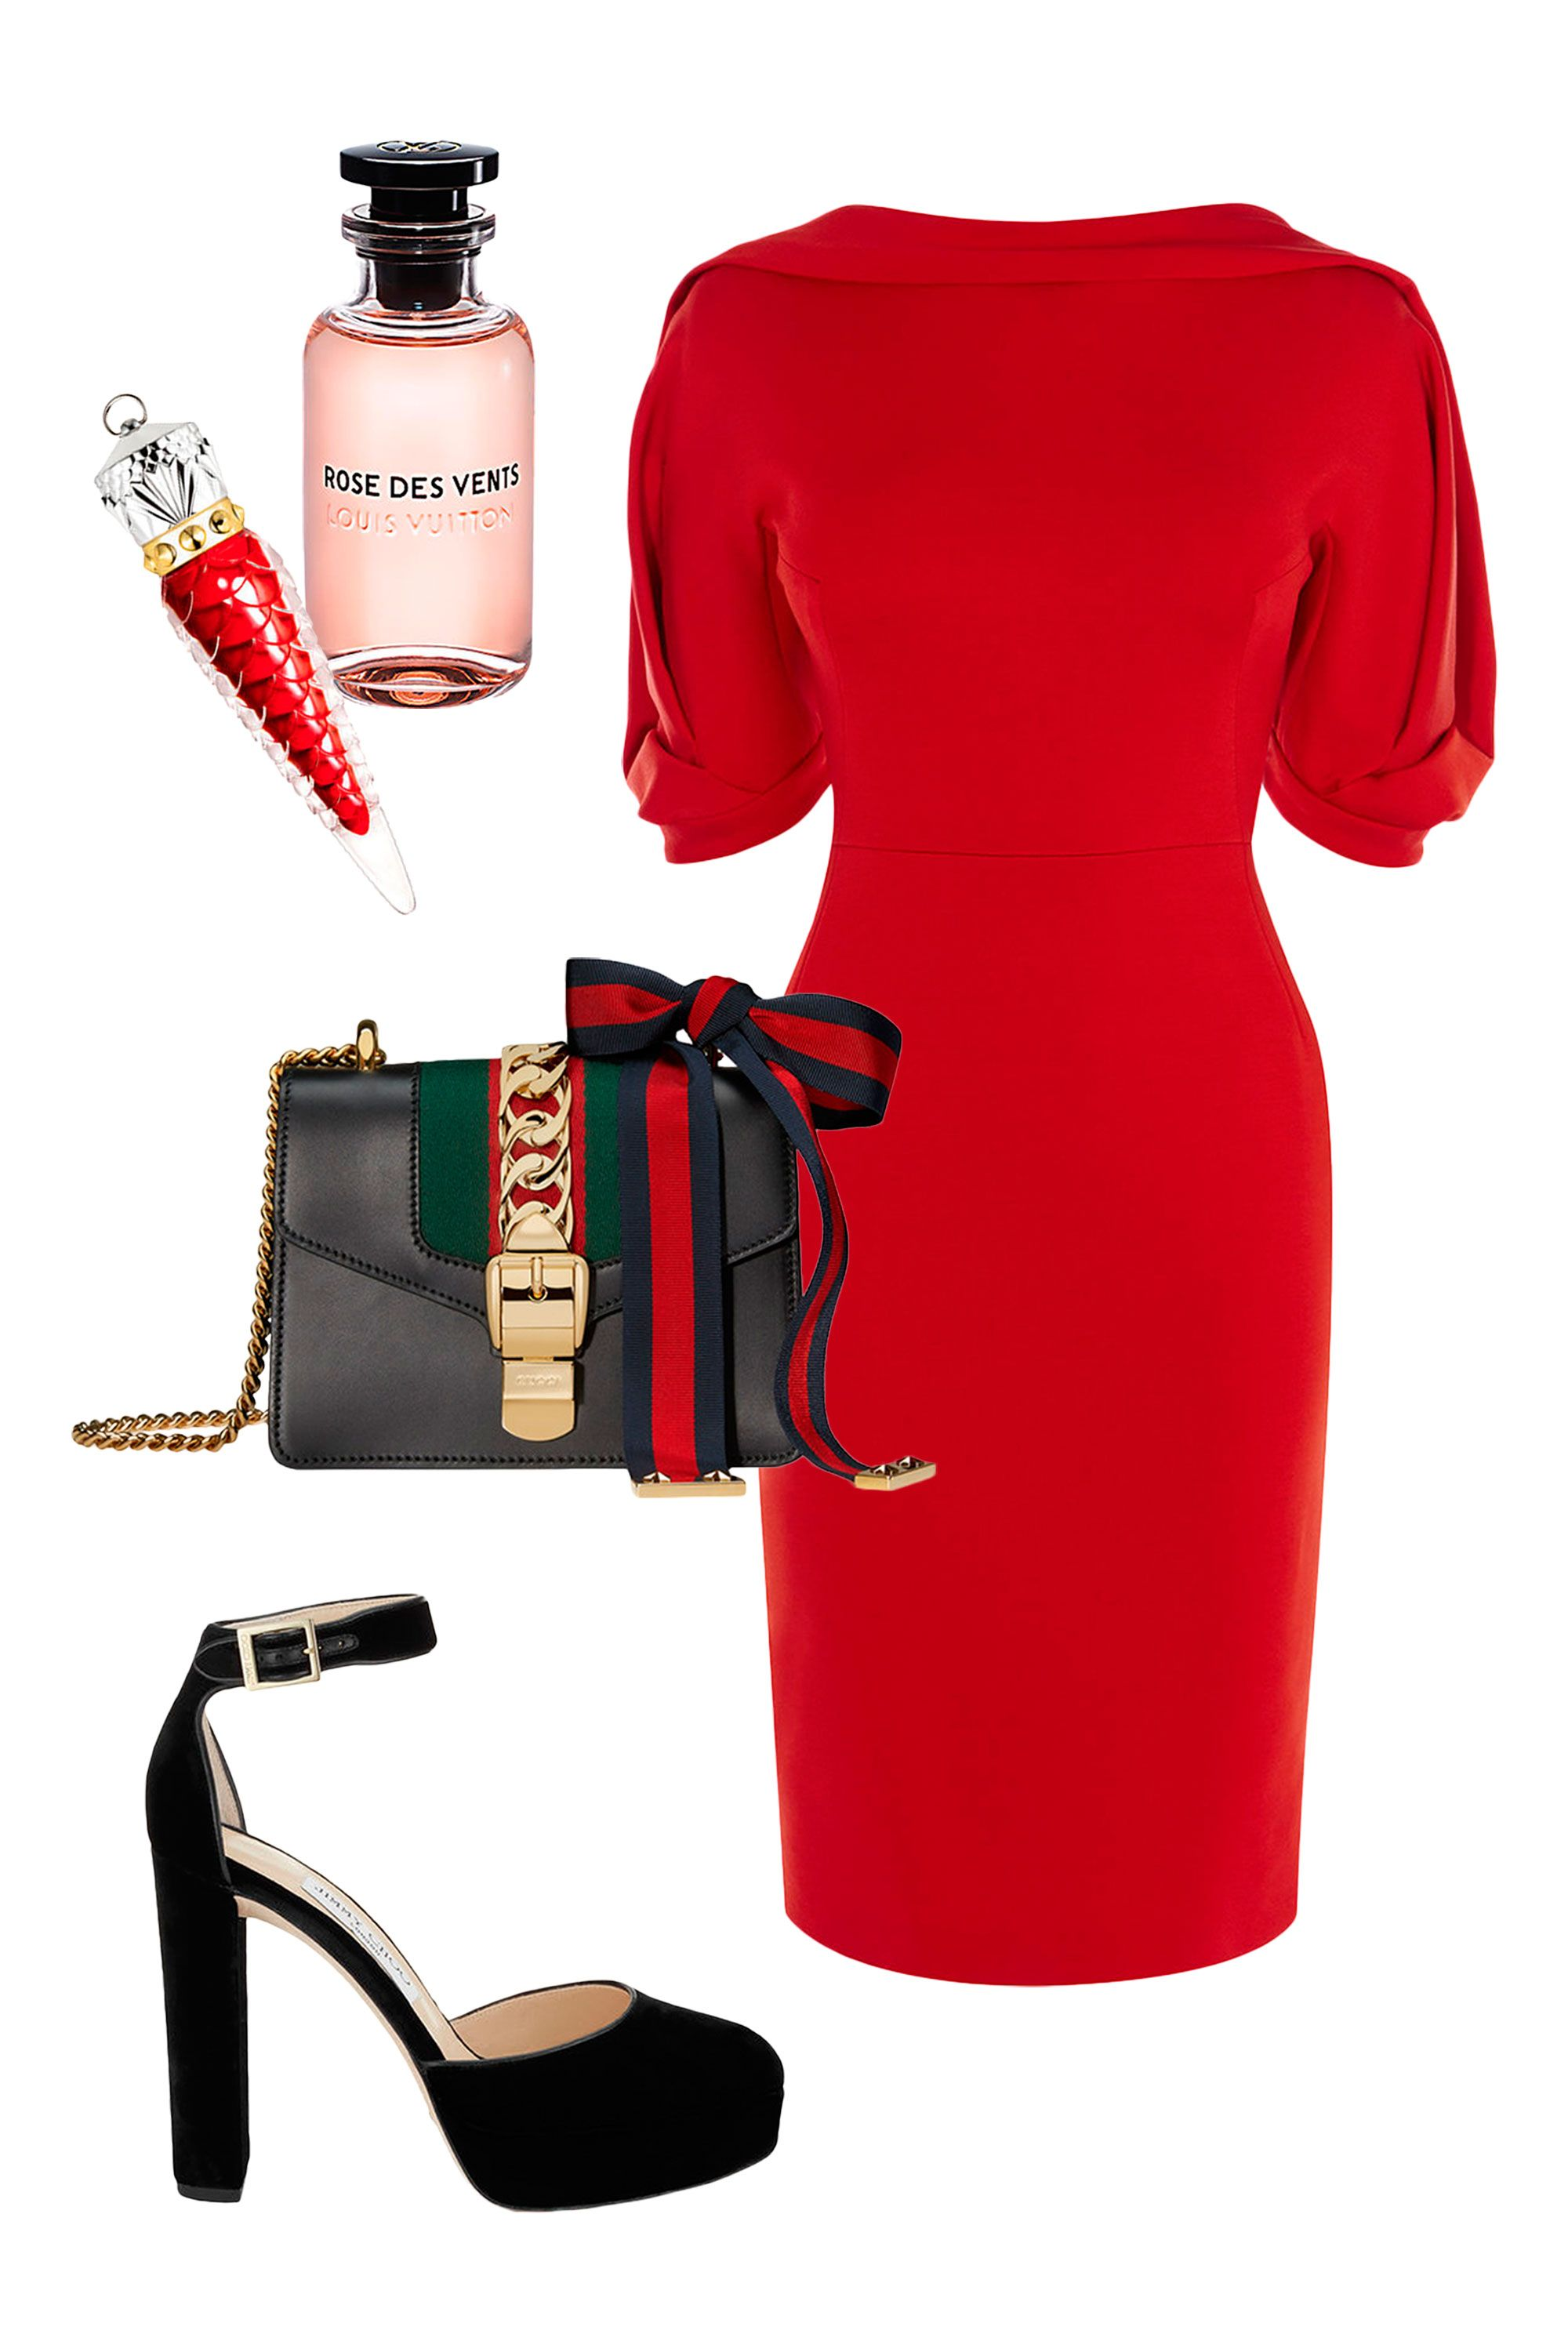 """<p>A body-skimming tailored silhouette with a chic draped neckline and statement sleeves evokes all the glamour of late mid-century supper clubs—made even bolder in a brazen lipstick red.<span id=""""selection-marker-1"""" class=""""redactor-selection-marker"""" data-verified=""""redactor"""" data-redactor-tag=""""span"""" data-redactor-class=""""redactor-selection-marker""""></span><br> </p><p><br> </p><p><em data-redactor-tag=""""em"""">Karen Millen Statement Sleeve Dress, $399, </em><em data-redactor-tag=""""em""""><a href=""""http://www.karenmillen.com/us/womens/new-in/statement-sleeve-dress/016241.html?dwvar_016241_color=94&cgid=new-in&position=14#page=2&start=1"""" target=""""_blank"""">karenmillen.com</a>; <em data-redactor-tag=""""em"""">Jimmy Choo Daphne 120 black velvet platforms, $925, </em><a href=""""http://us.jimmychoo.com/en/women/new-arrivals/daphne-120/black-velvet-platforms-DAPHNE120VEL010003.html?cgid=women-newarrivals#start=1"""" target=""""_blank""""><em data-redactor-tag=""""em"""">jimmychoo.com</em></a><span class=""""redactor-invisible-space"""" data-verified=""""redactor"""" data-redactor-tag=""""span"""" data-redactor-class=""""redactor-invisible-space"""">; <em data-redactor-tag=""""em"""">Gucci Silvie Leather Mini Chain Bag, $1950, <a href=""""https://www.gucci.com/us/en/pr/women/handbags/womens-shoulder-bags/sylvie-leather-mini-chain-bag-p-431666CVLEG8638?position=19&listName=ProductGridComponent&categoryPath=Women/Handbags/Womens-Mini-Bags"""" target=""""_blank"""">gucci.com</a></em><span class=""""redactor-invisible-space"""" data-verified=""""redactor"""" data-redactor-tag=""""span"""" data-redactor-class=""""redactor-invisible-space"""">; <em data-redactor-tag=""""em"""">Christian Louboutin Loubilaque Lip Lacquer in Rouge Louboutin, $85, <a href=""""http://www.neimanmarcus.com/Christian-Louboutin-Loubilaque-Lip-Lacquer-Lips/prod191720427_cat10470734__/p.prod?icid=&searchType=EndecaDrivenCat&rte=%252Fcategory.jsp%253FitemId%253Dcat10470734%2526pageSize%253D30%2526No%253D0%2526refinements%253D&eItemId=prod191720427&cmCat=product&childItemId=NMC23PJ_01"""" target=""""_blank"""">neimanmarcus.com<"""